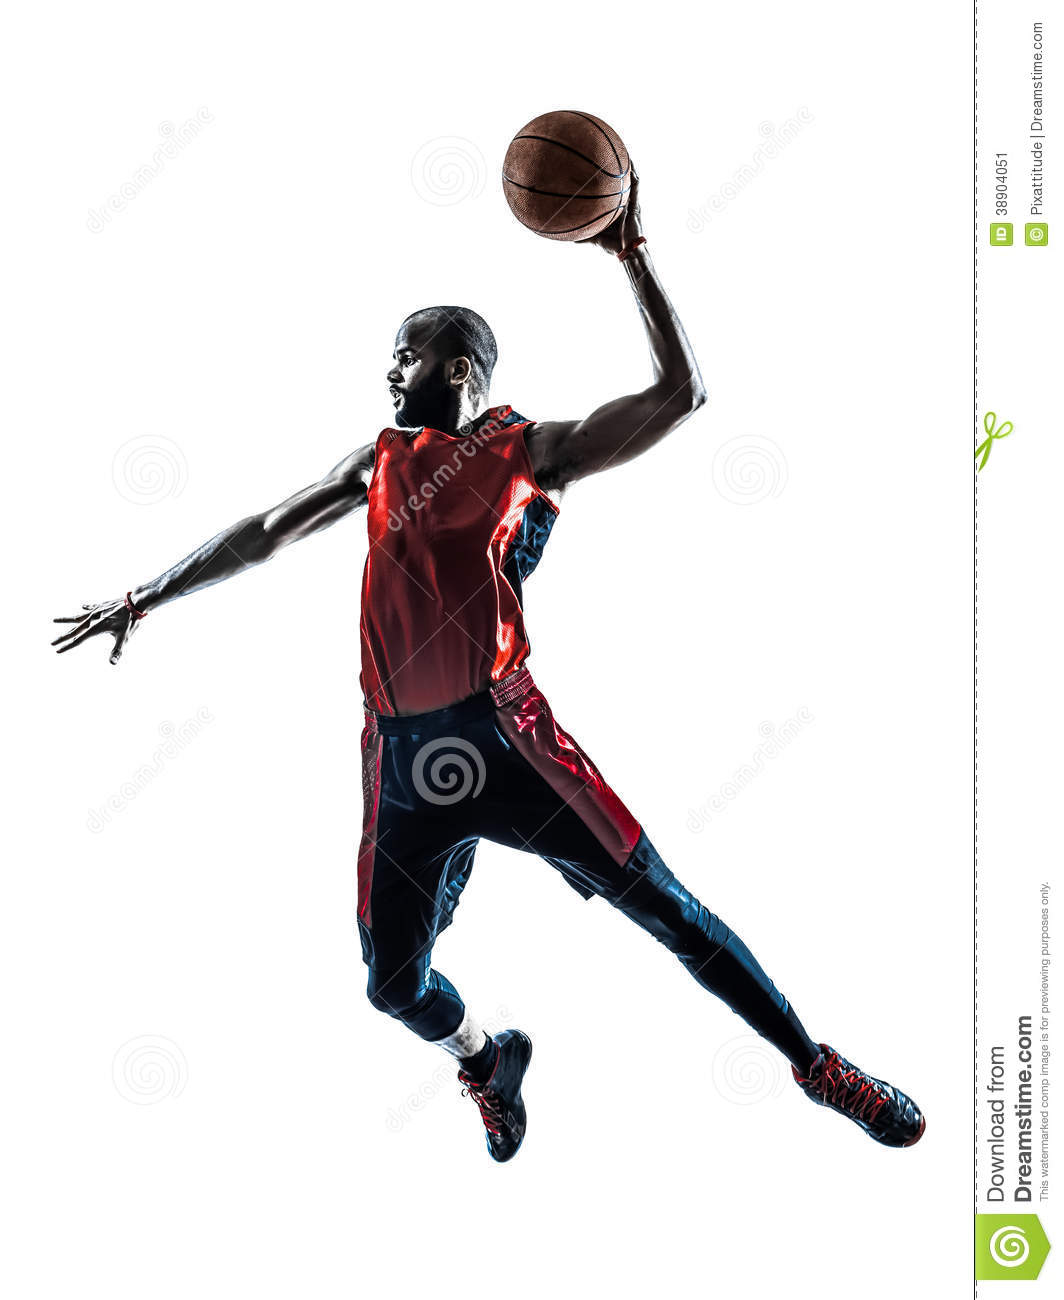 Man basketball player jumping dunking silhouette